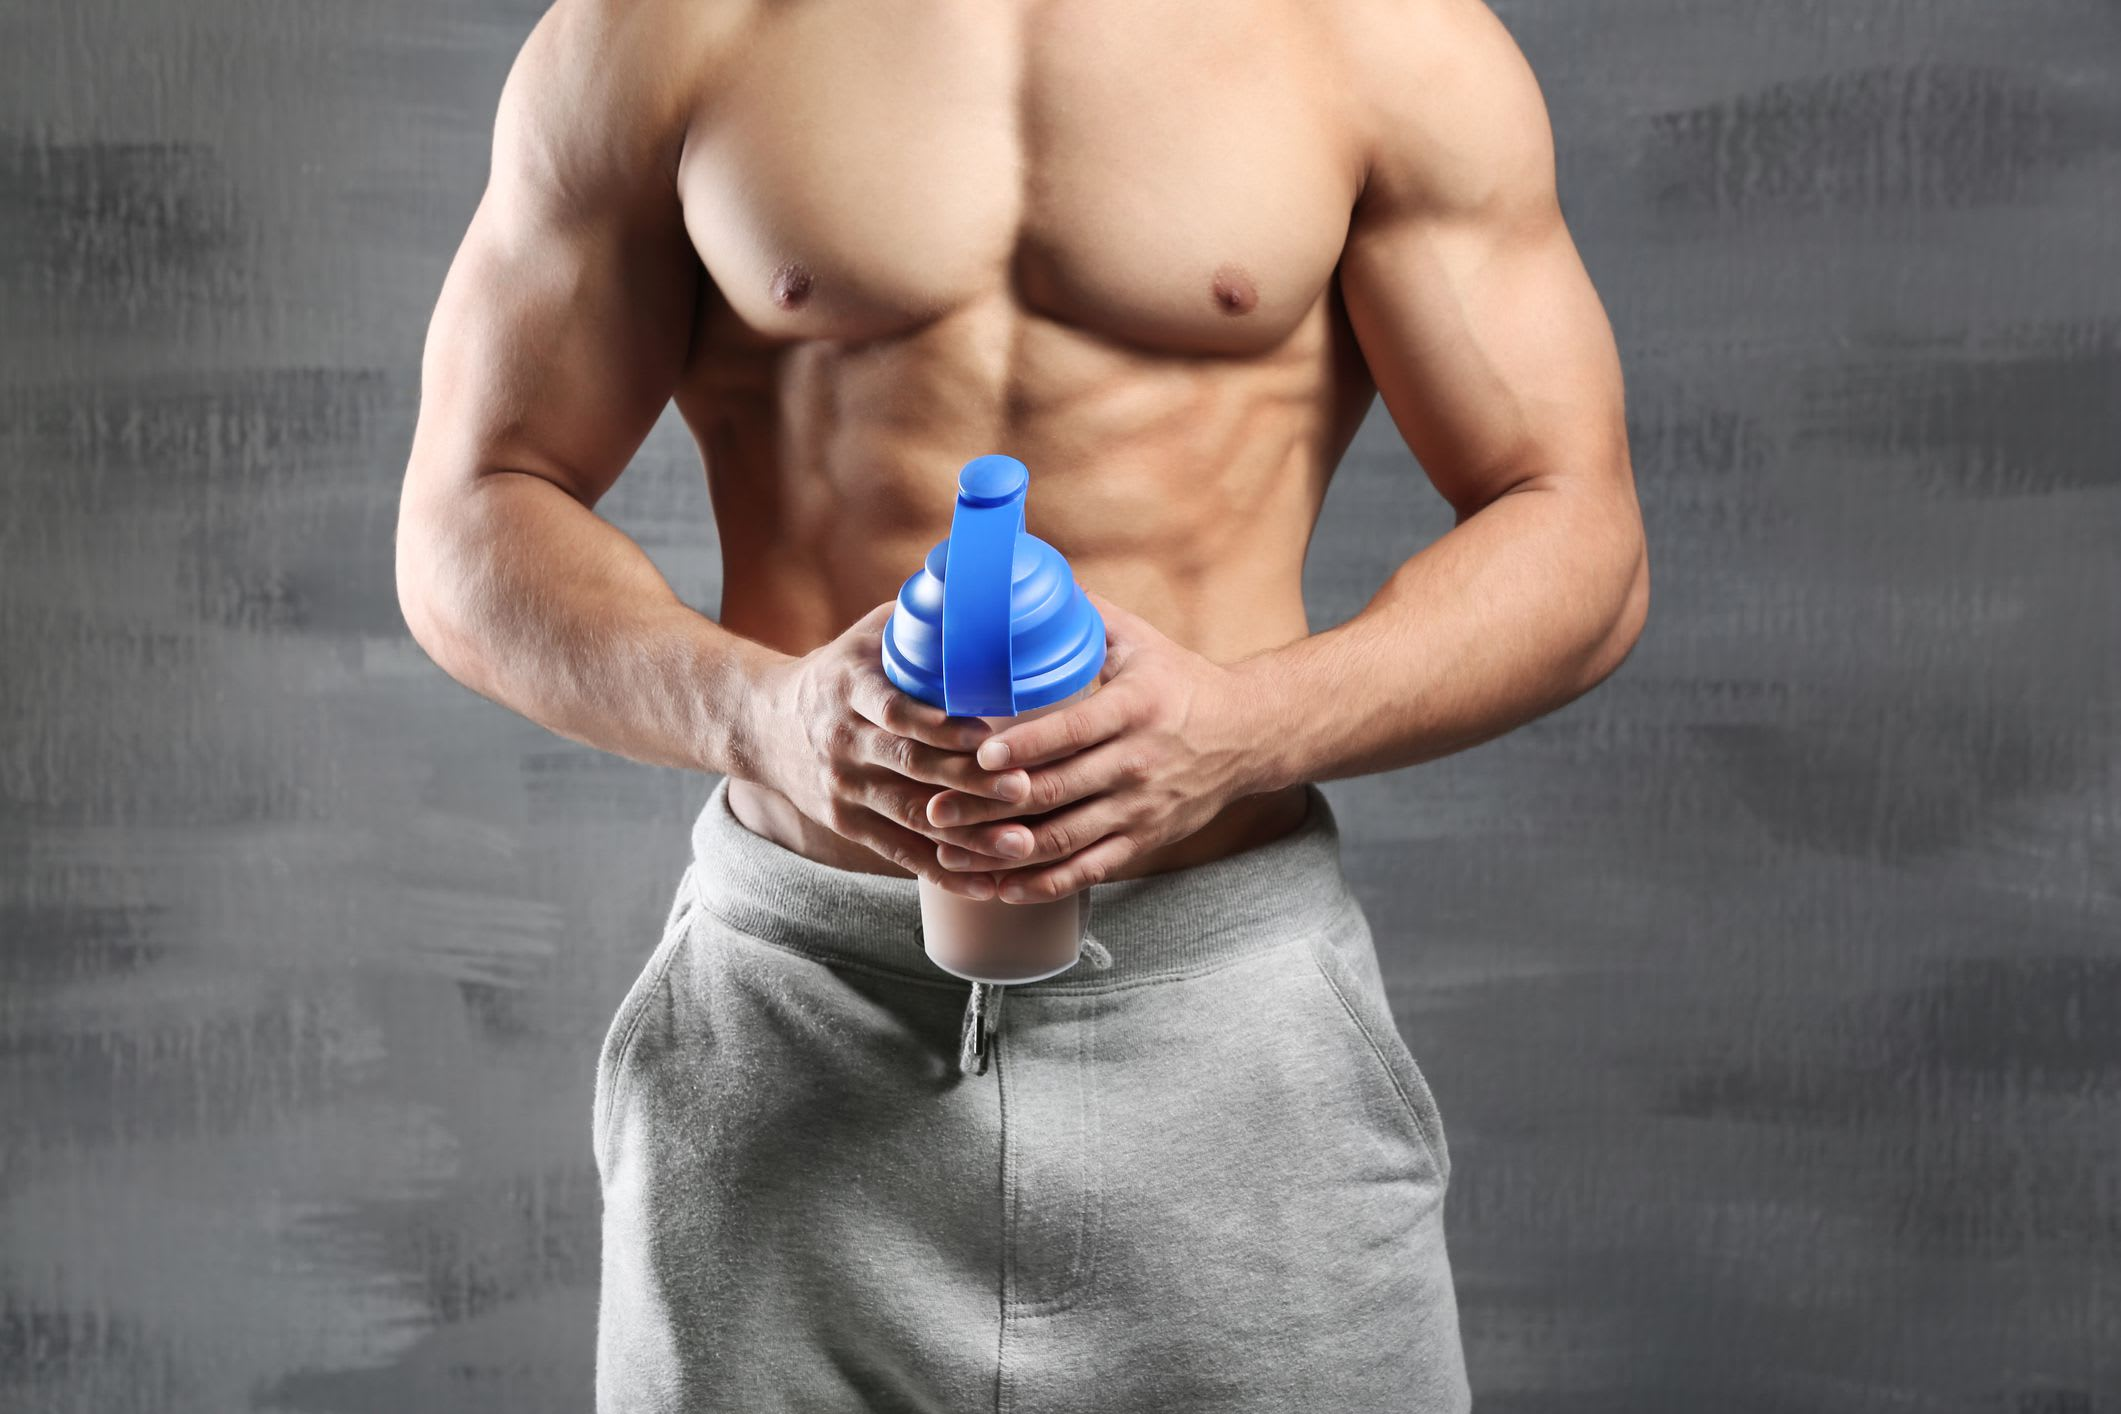 man holding a blue bottle of protein drink